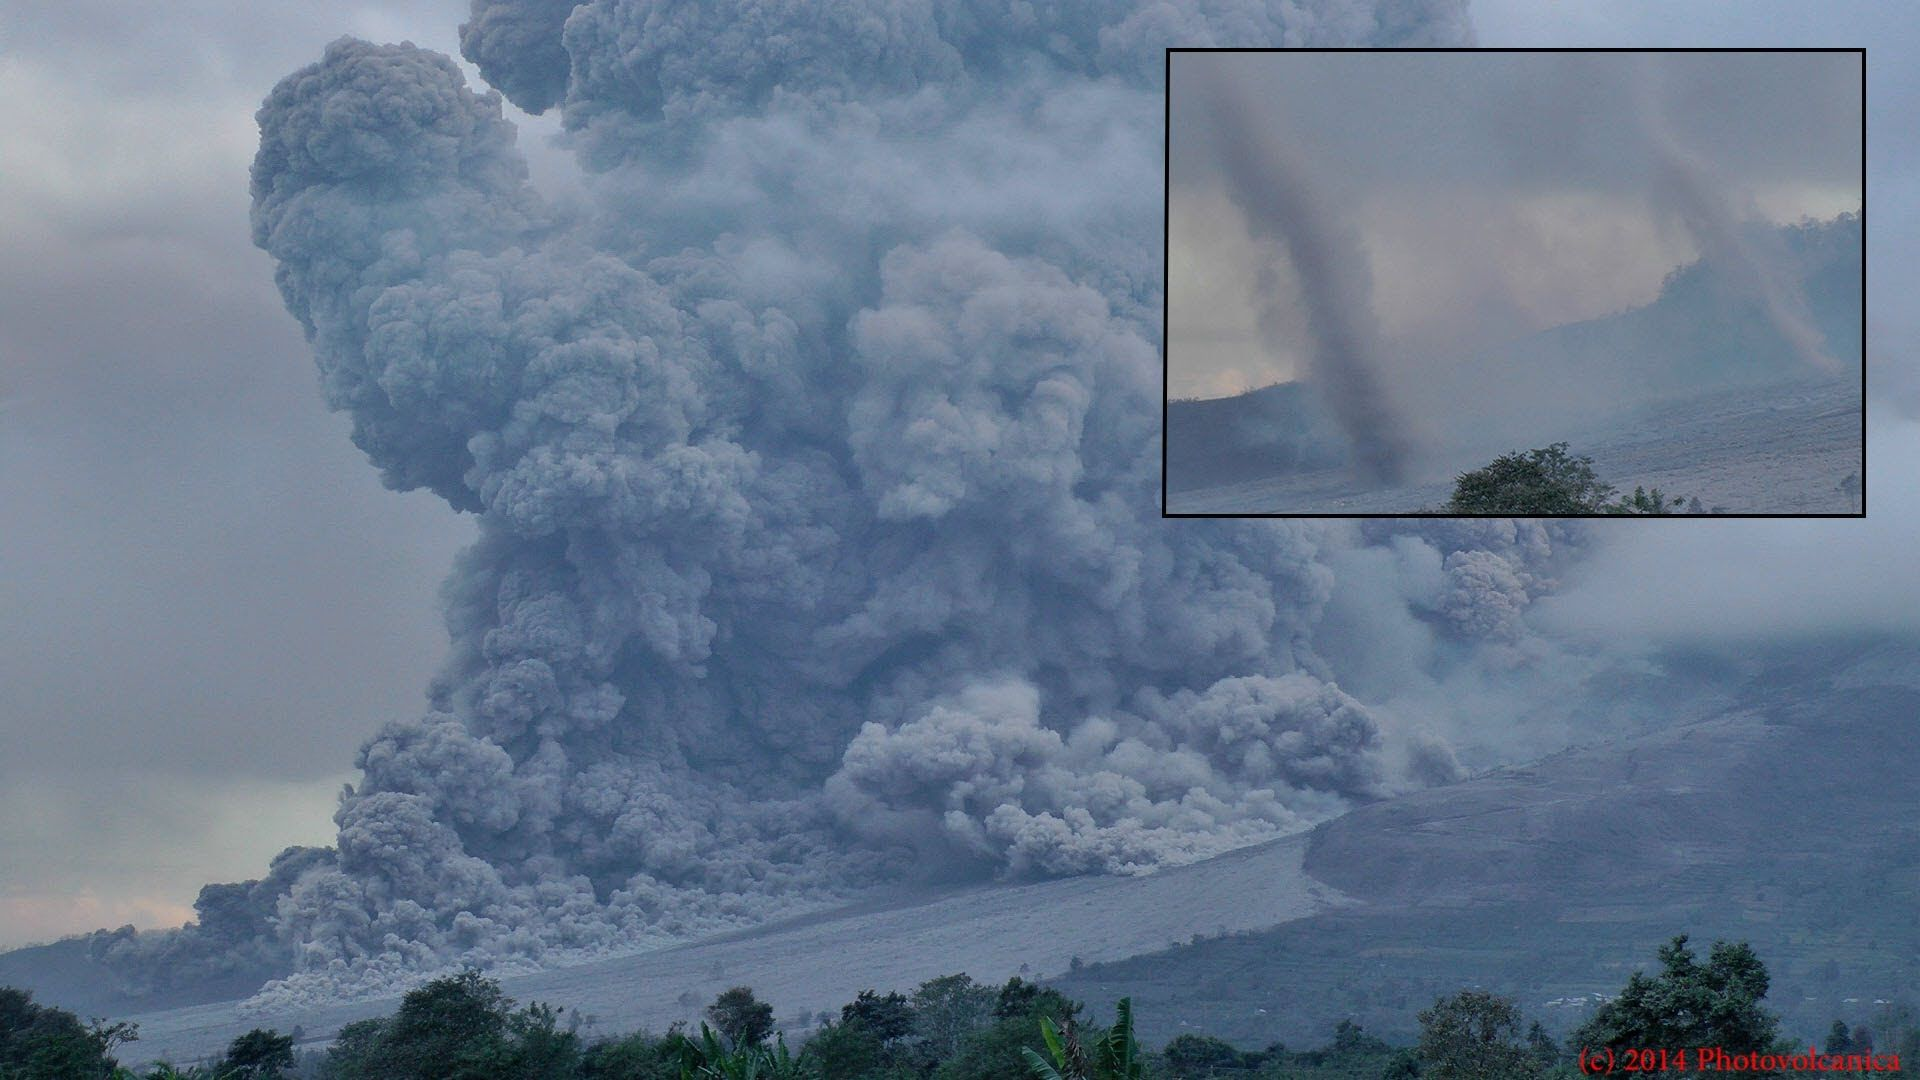 A Recent Video From Sinabug Of A Pyroclastic Flow